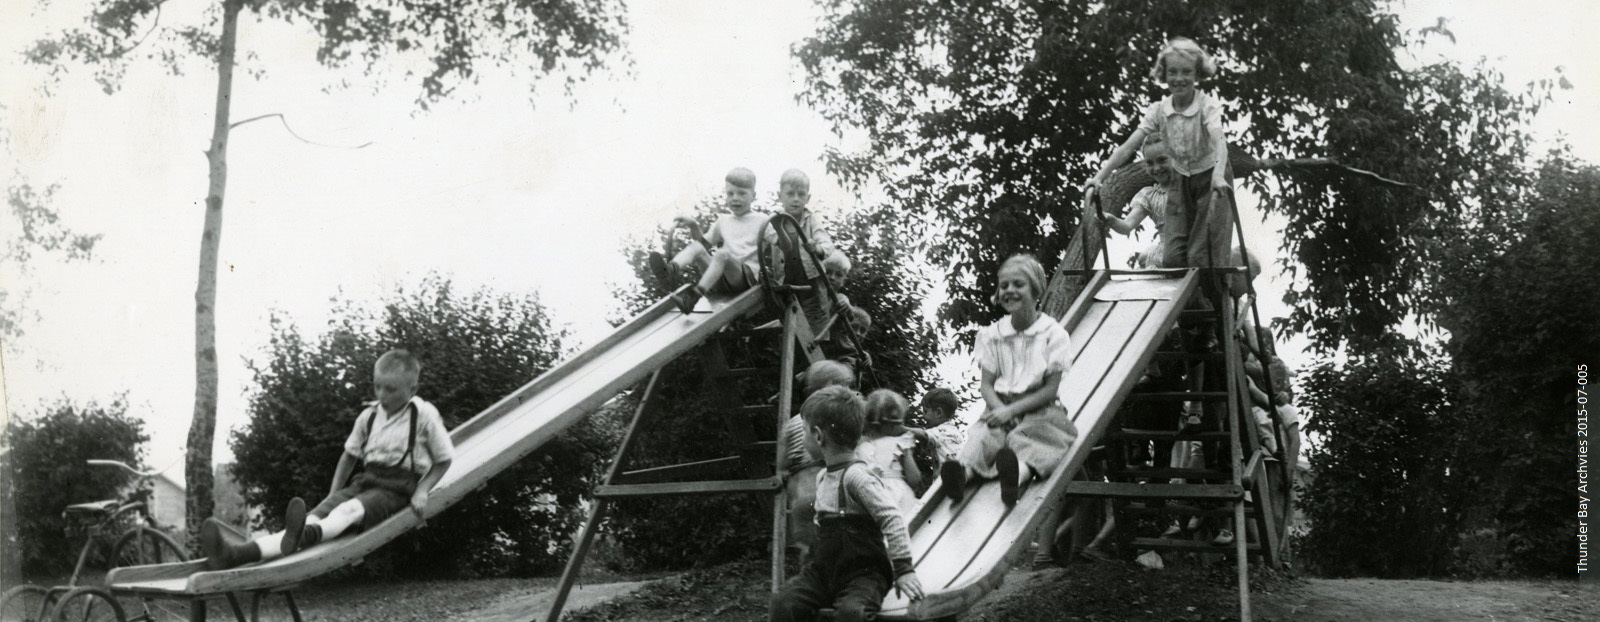 Young children play on two slides in a park